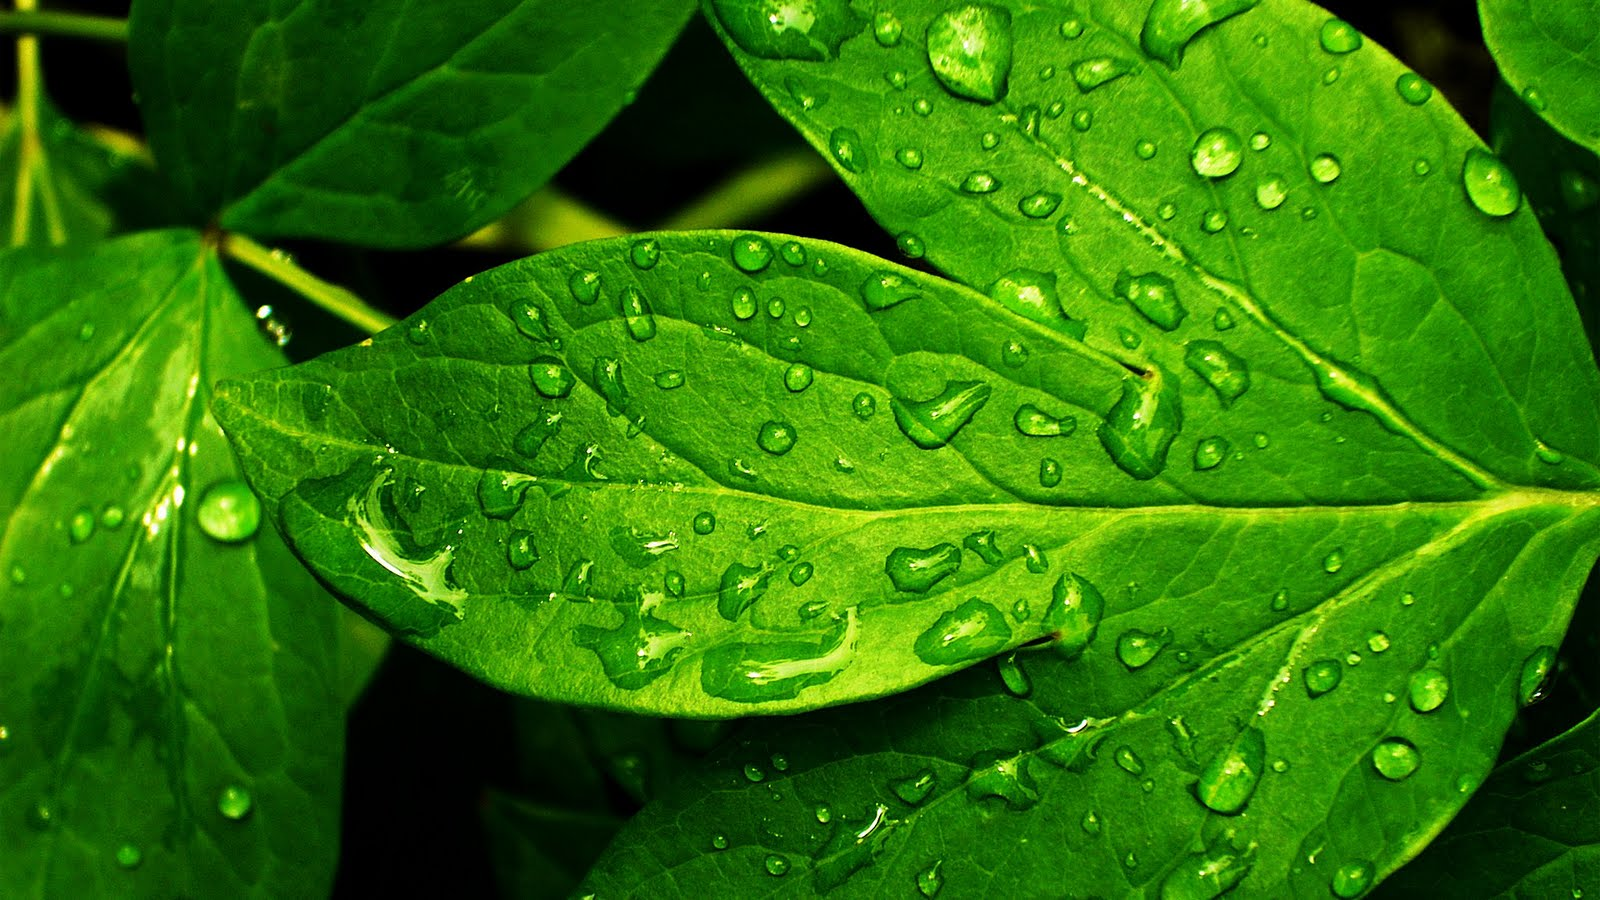 Fresh Raindrops On Green Leafs HD Wallpapers